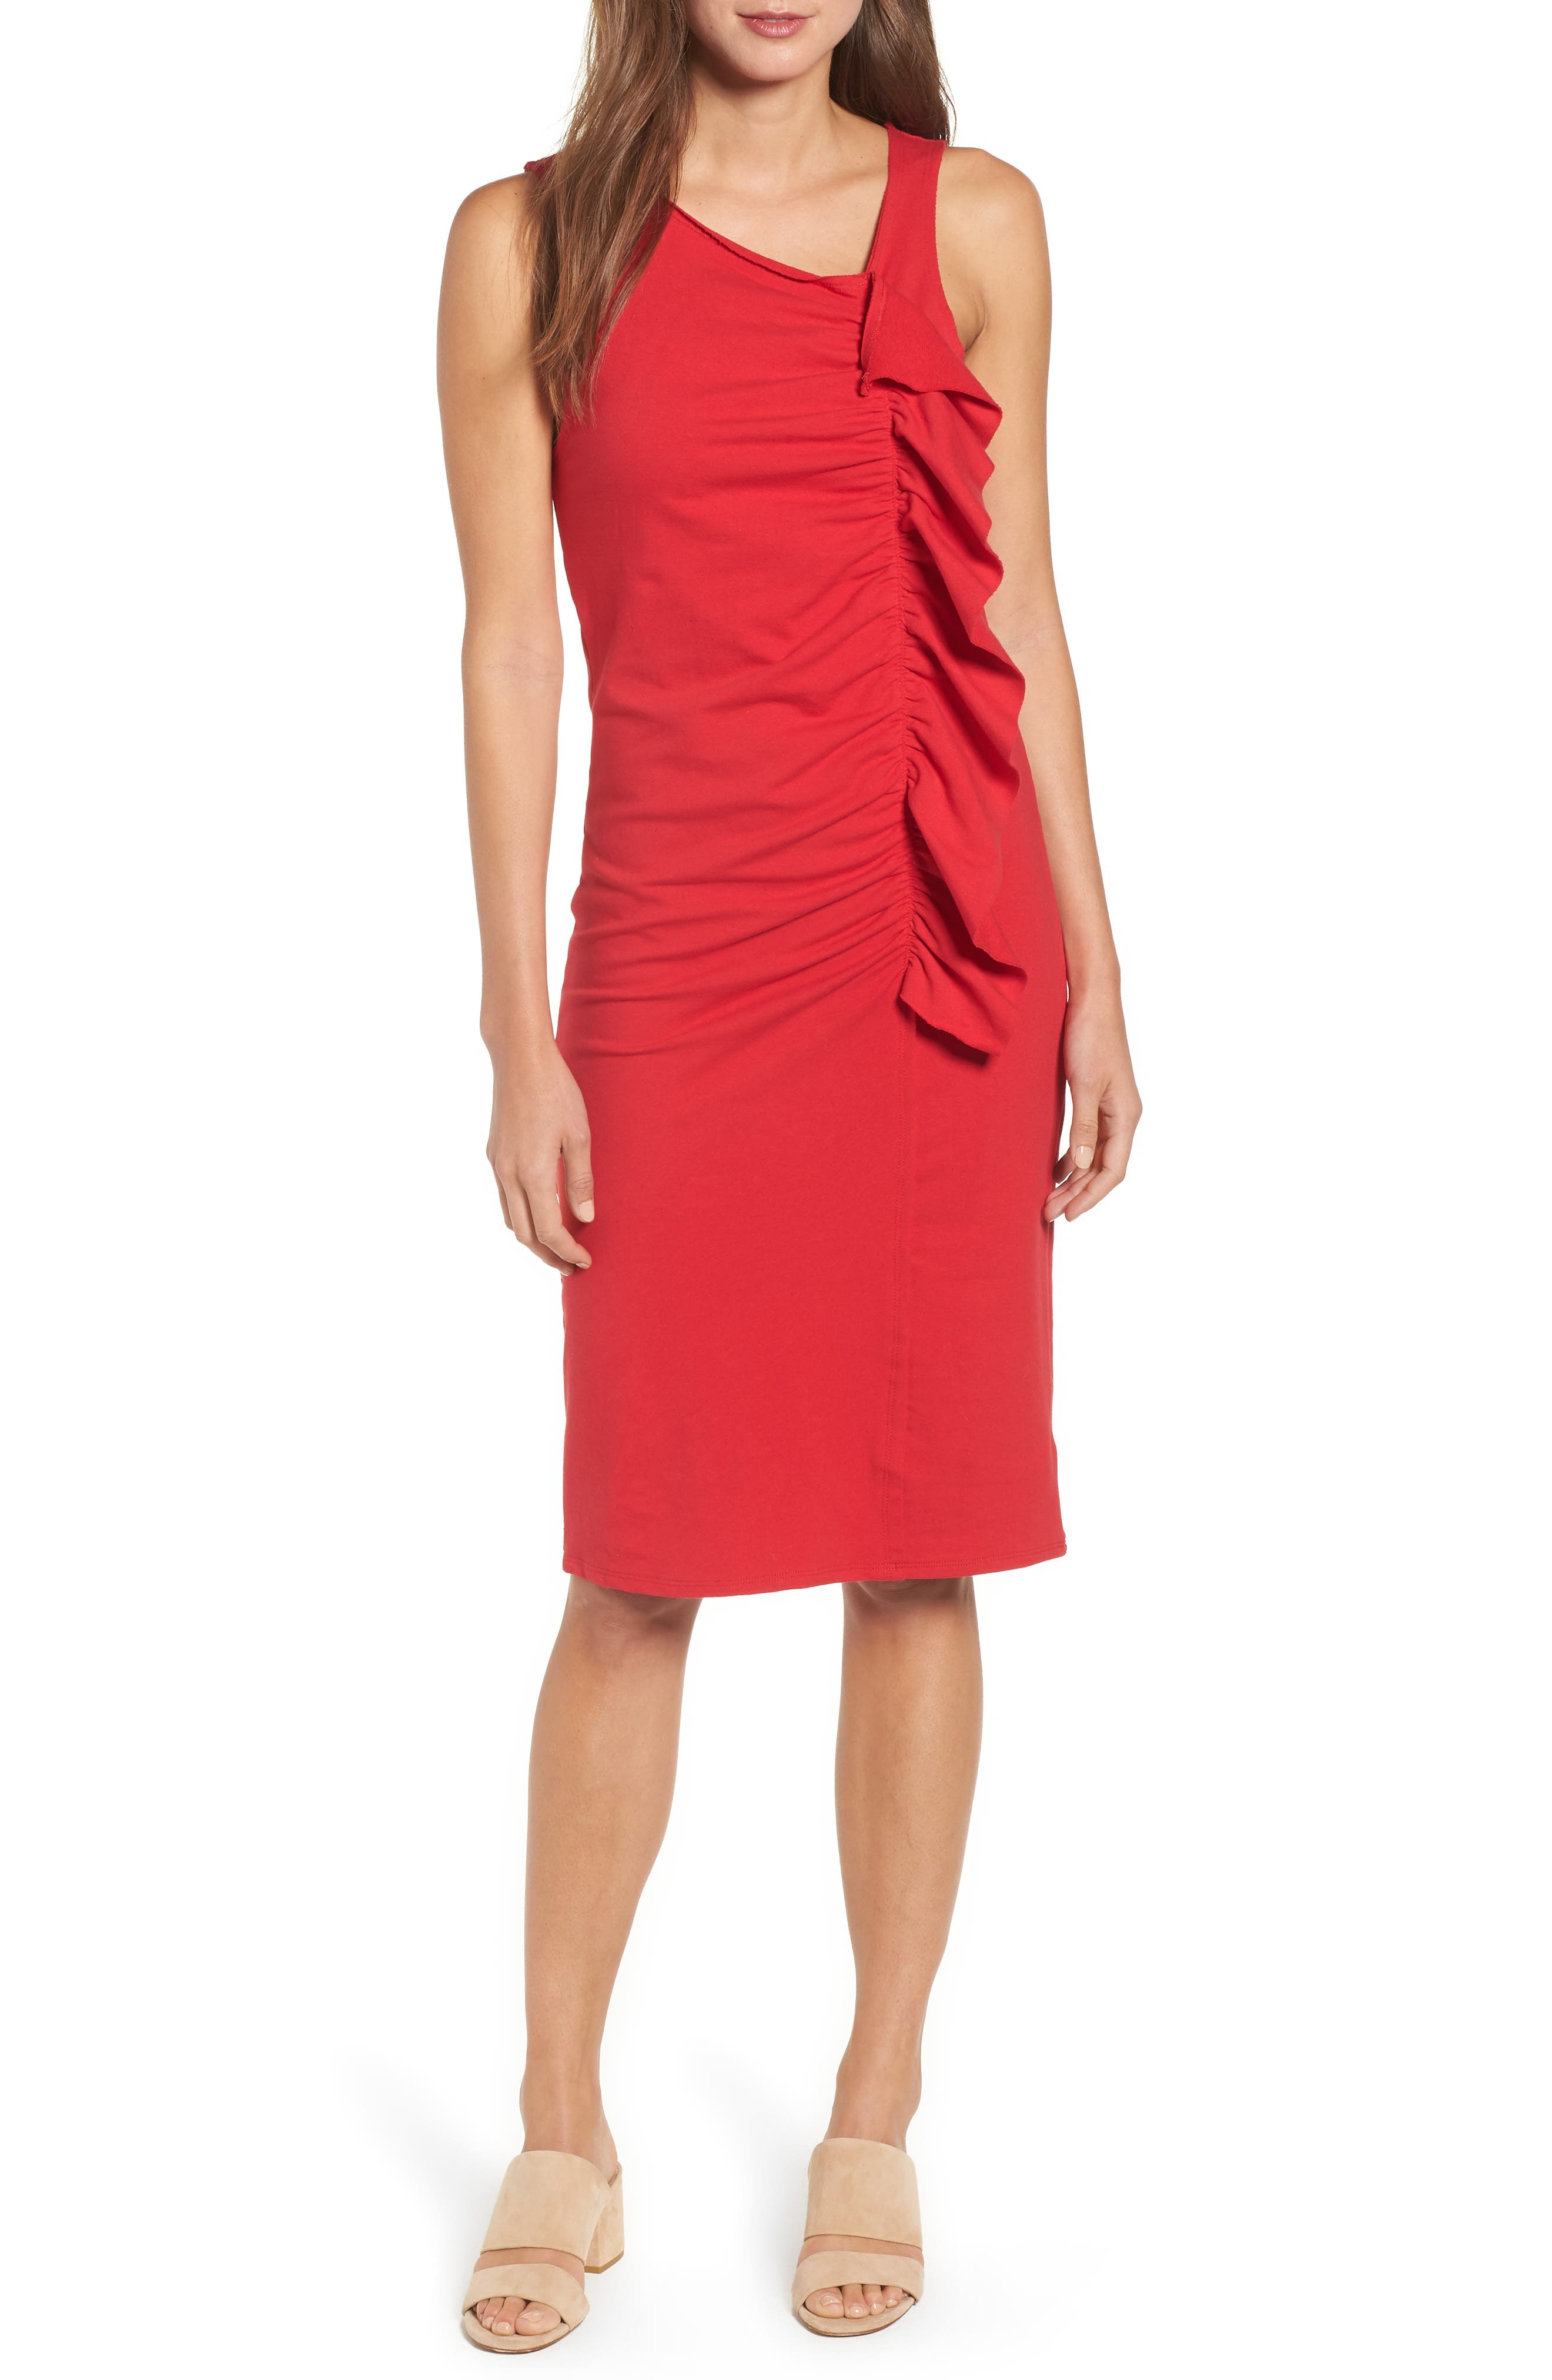 French Terry Ruffle Front Dress,                         Main,                         color, Red Tomato